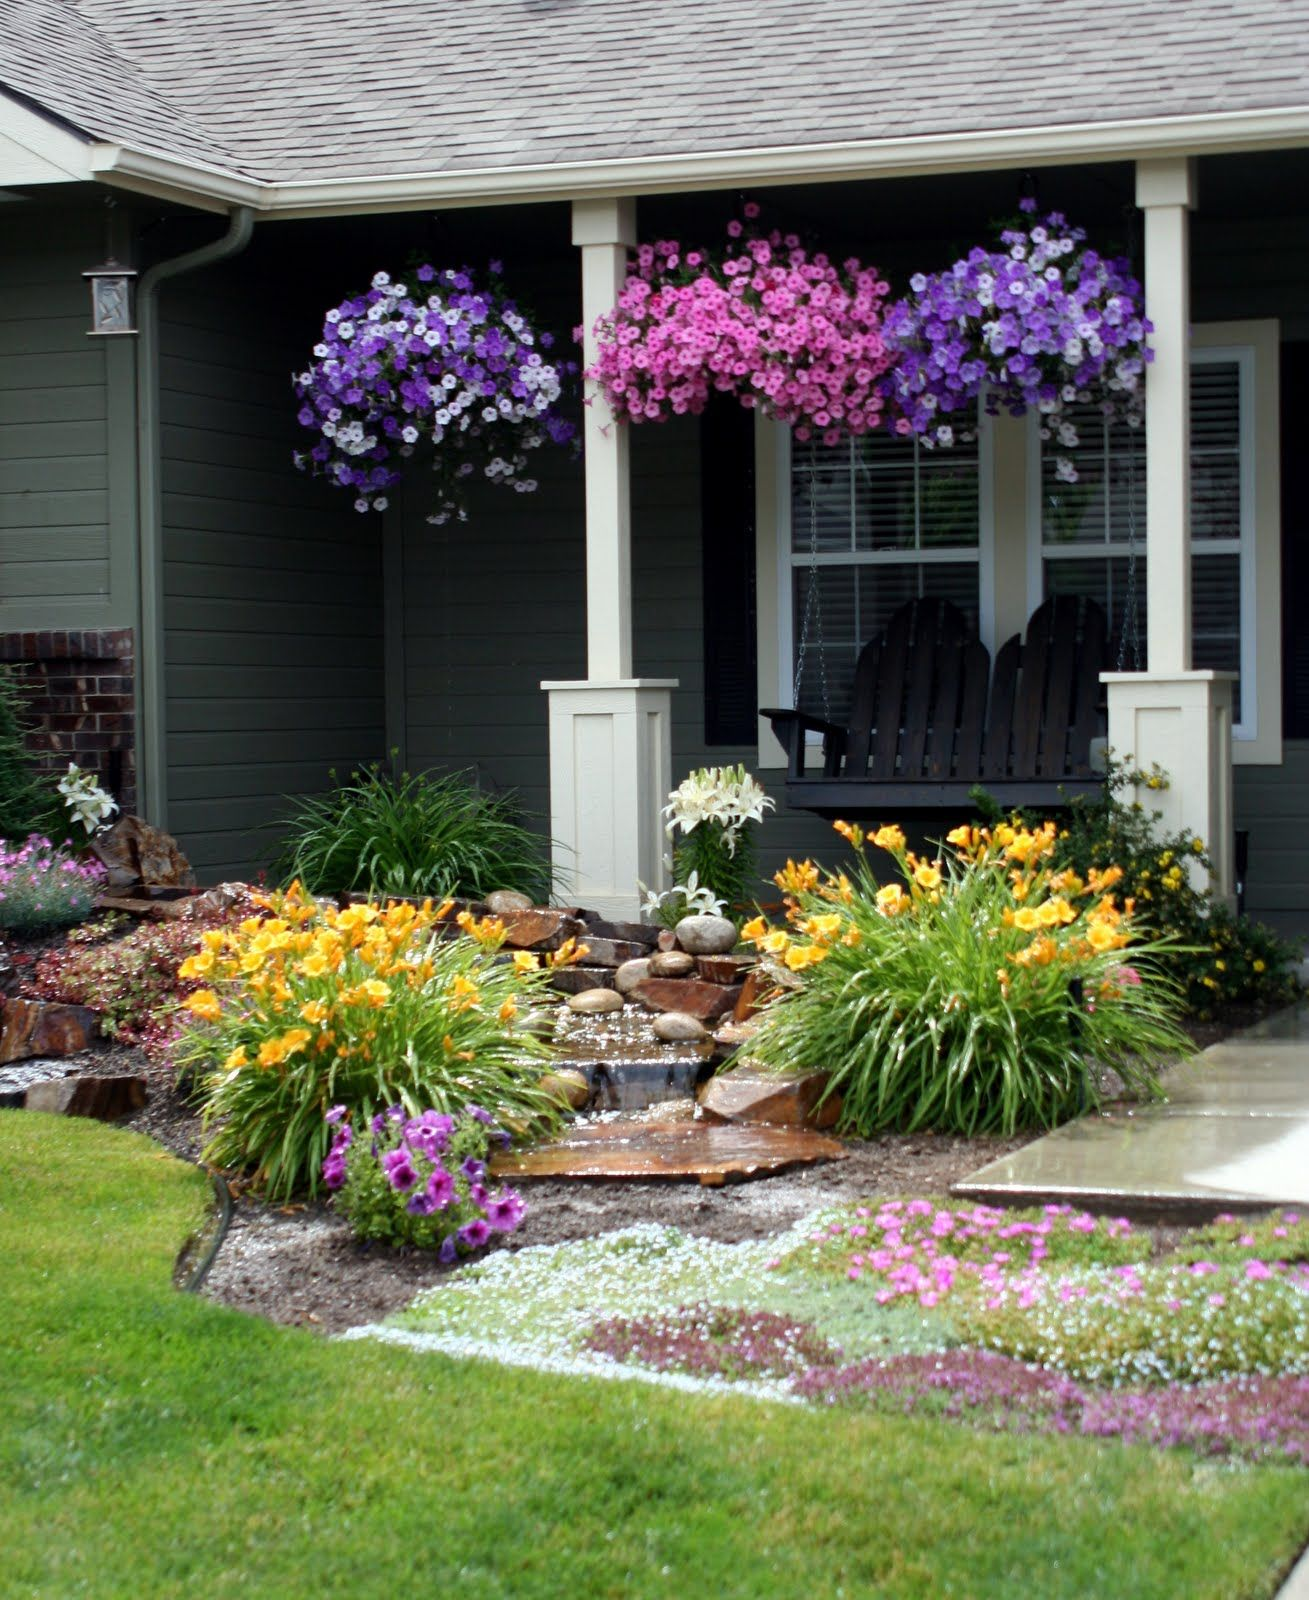 Front yard landscaping makeover with waterfall and adirondack porch swing.